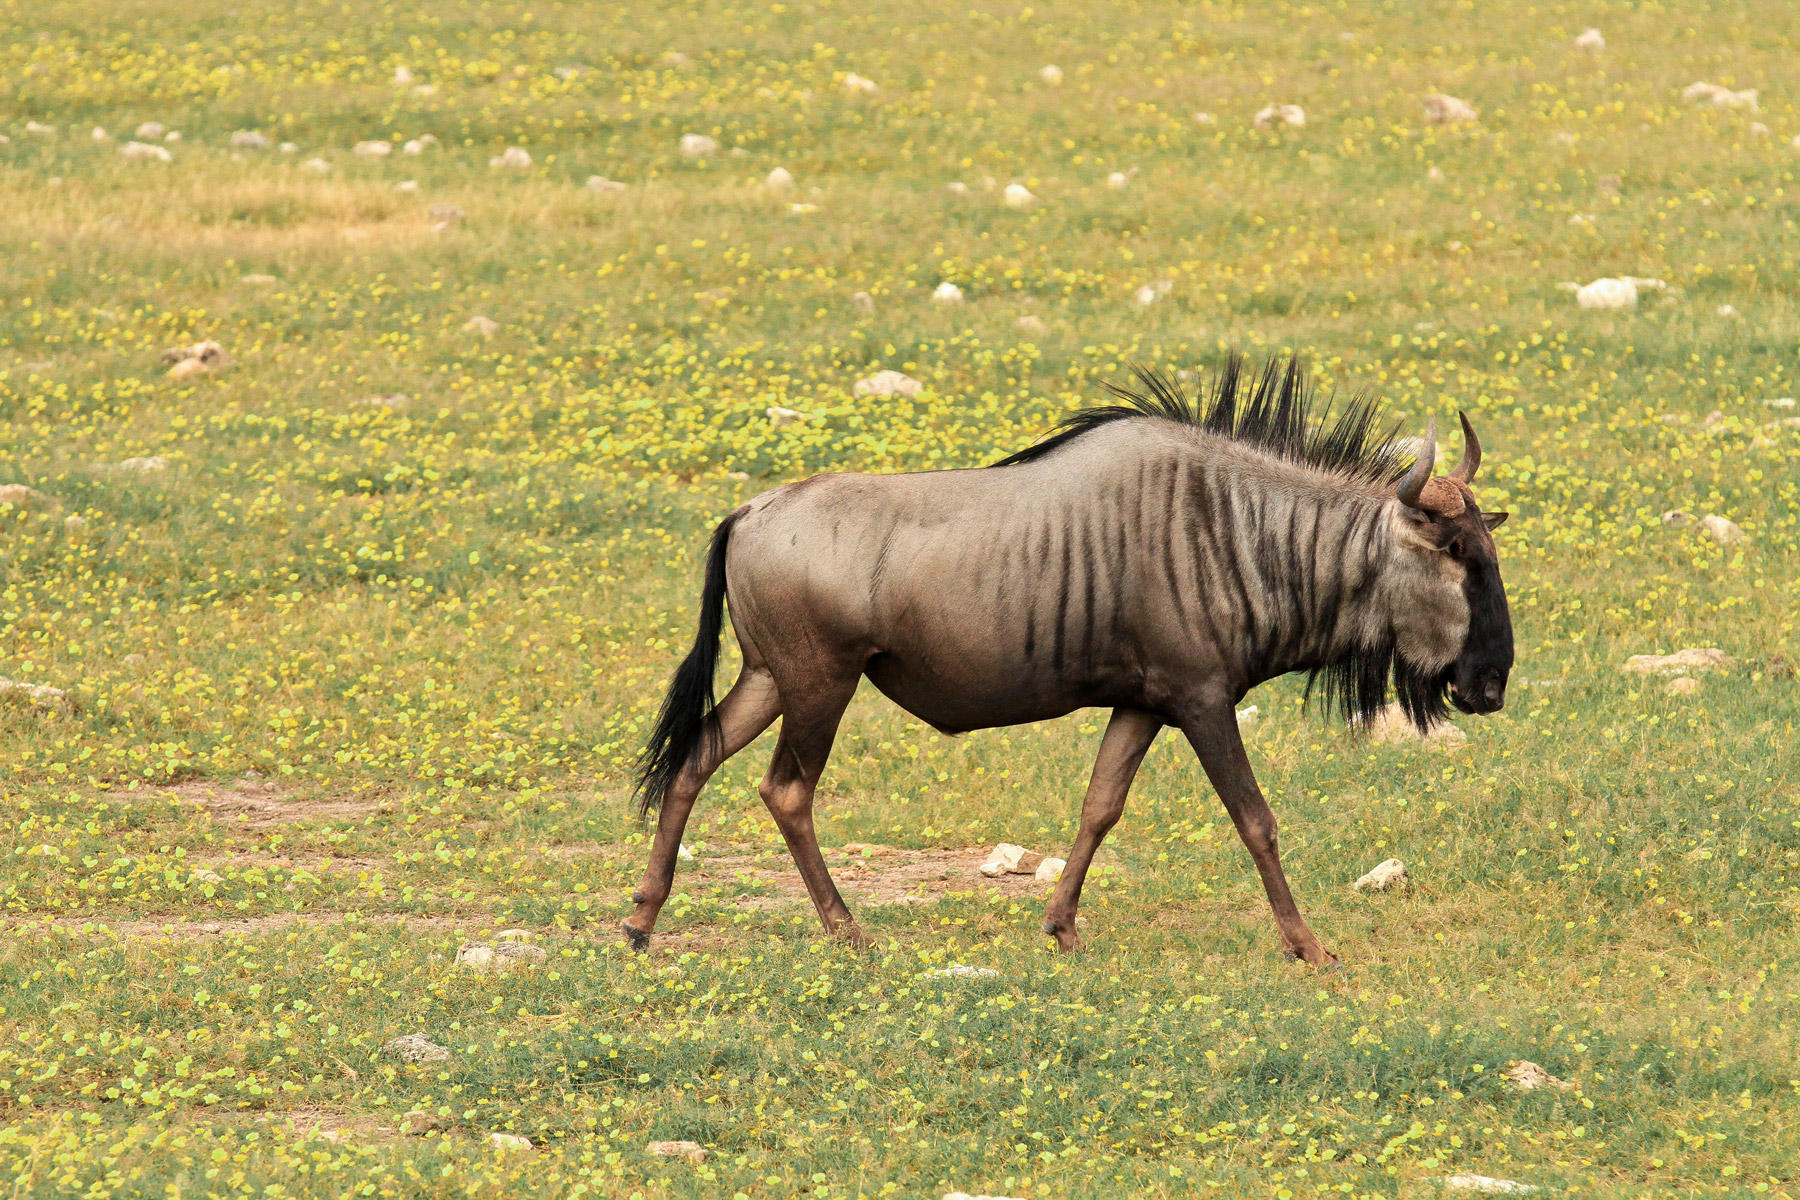 A wildebeest in the Chobe National Park in Botswana